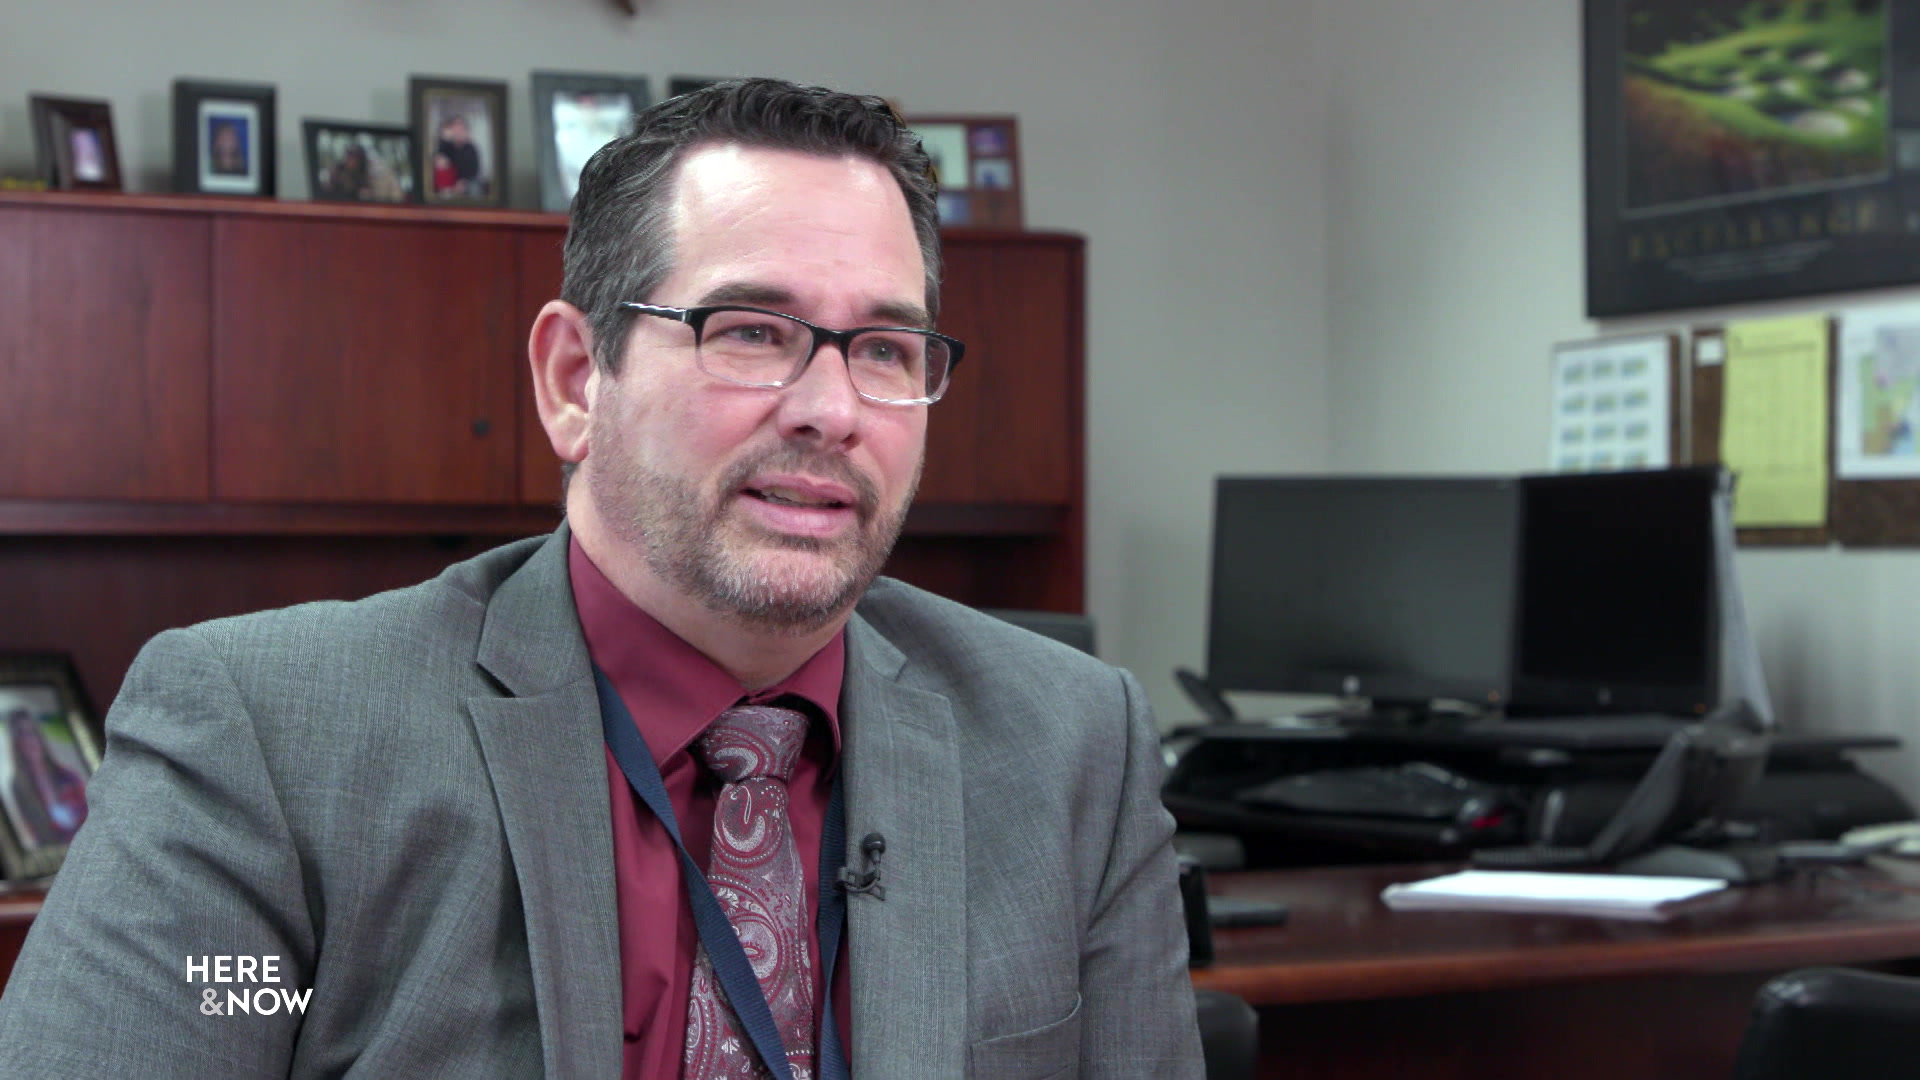 Randy Scholz sits in an office with computer and desk in background.